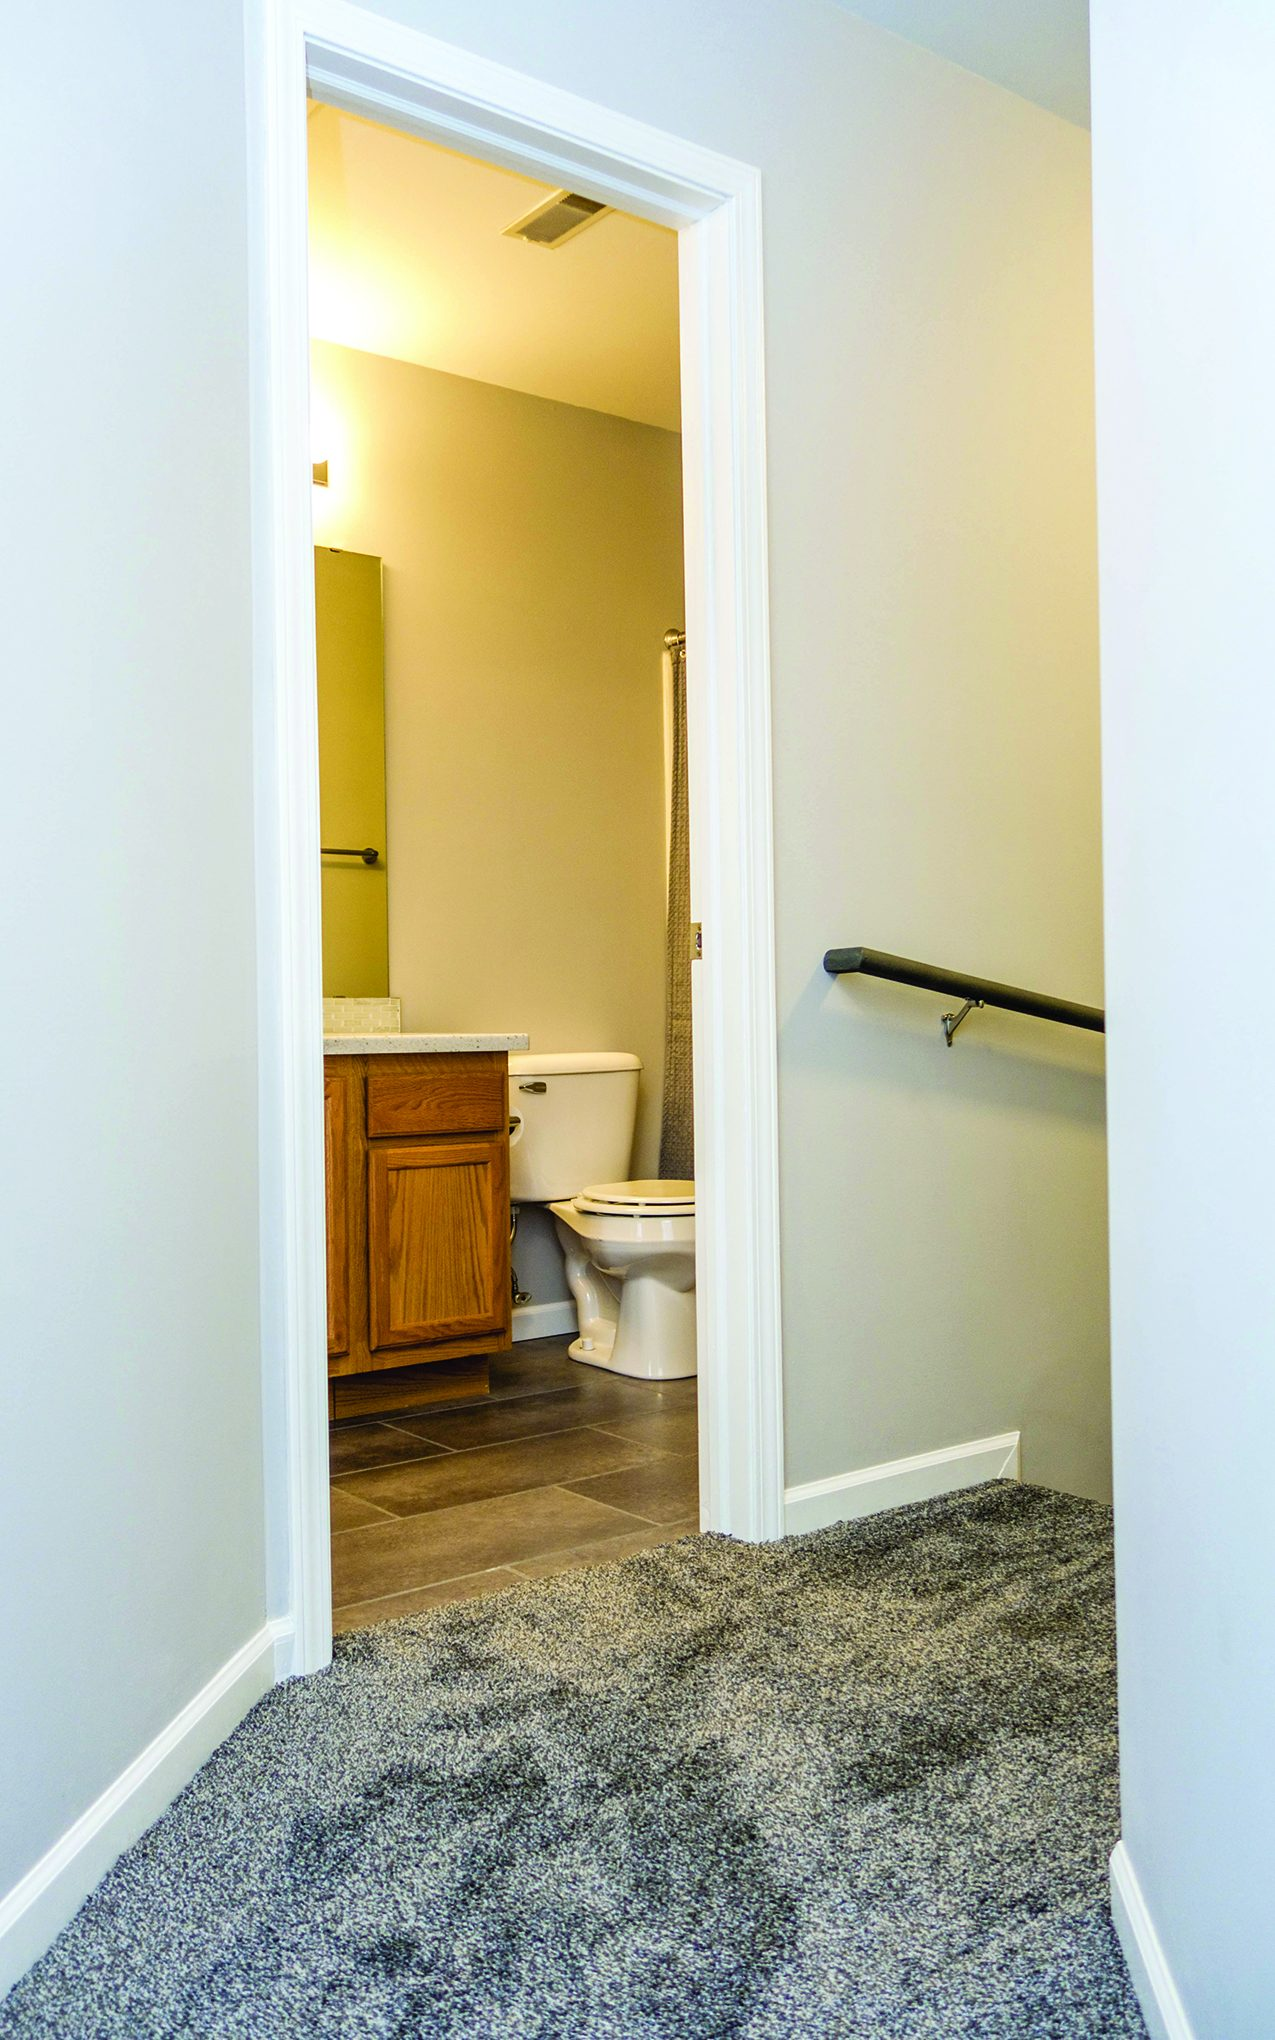 6 Ways to Make Bathrooms a Safer Place